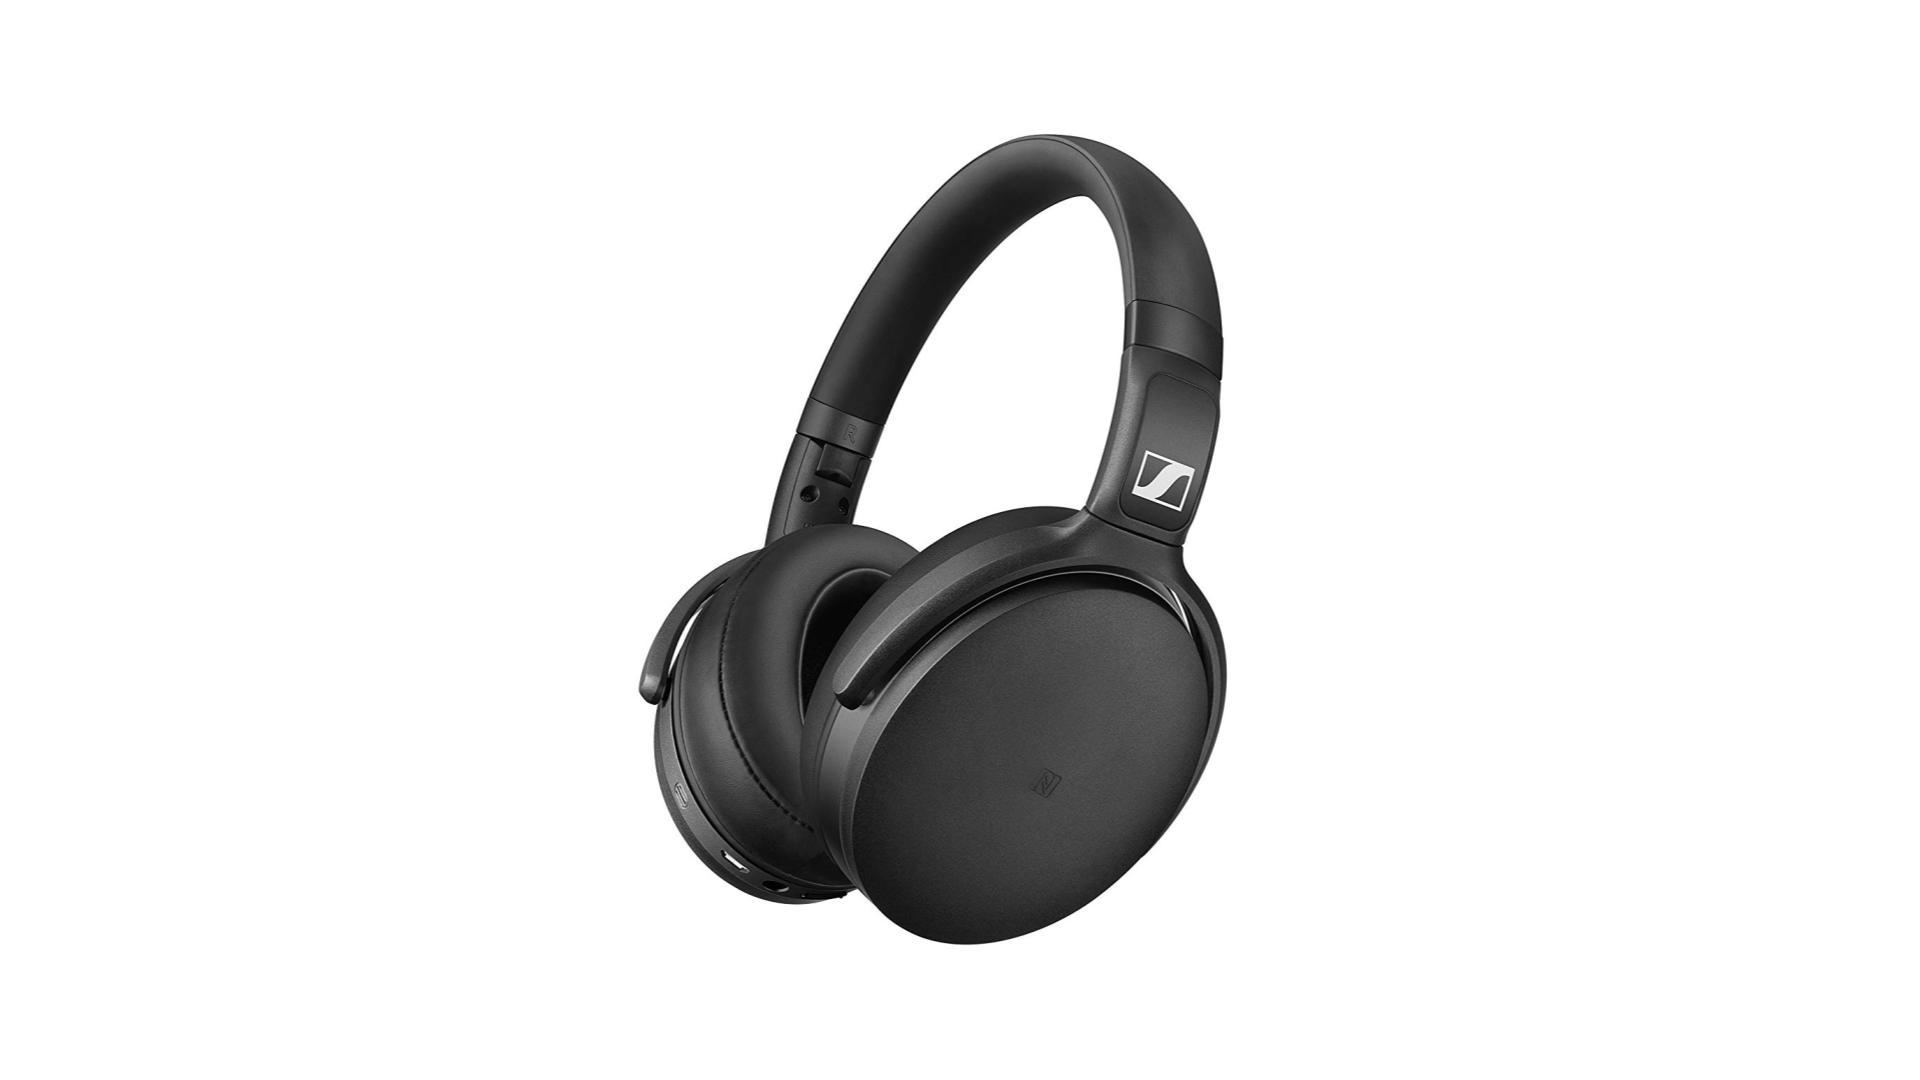 🔥 Black Friday : le casque bluetooth Sennheiser HD 4.50 passe à 99 euros chez Amazon